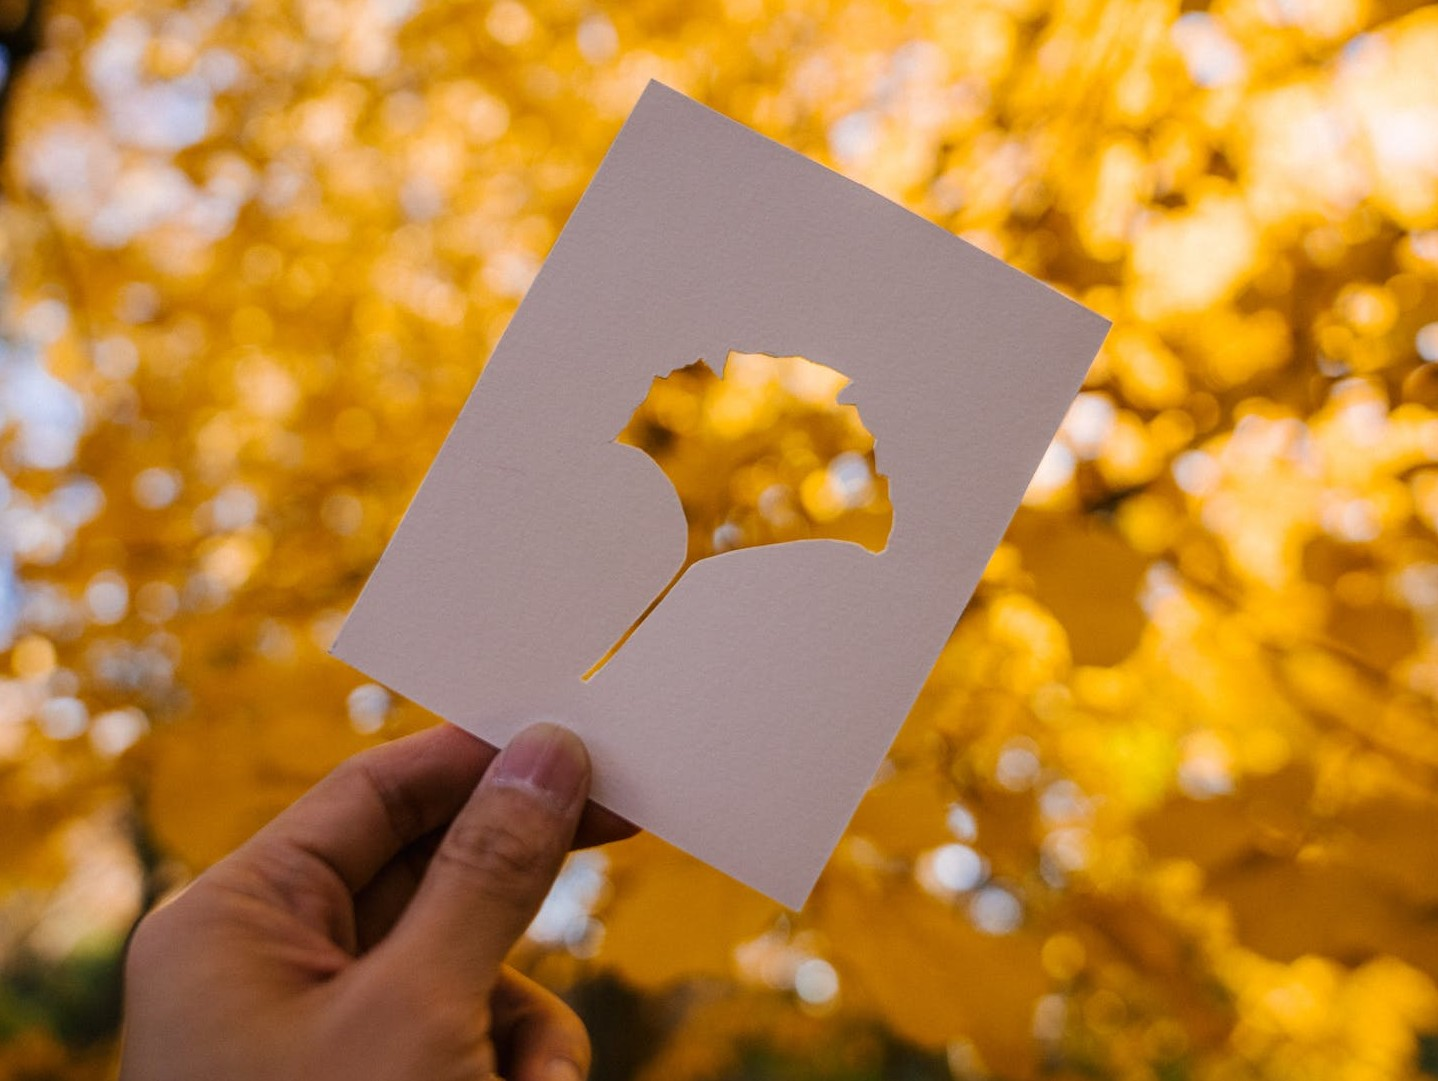 person showing card against yellow autumn leaves